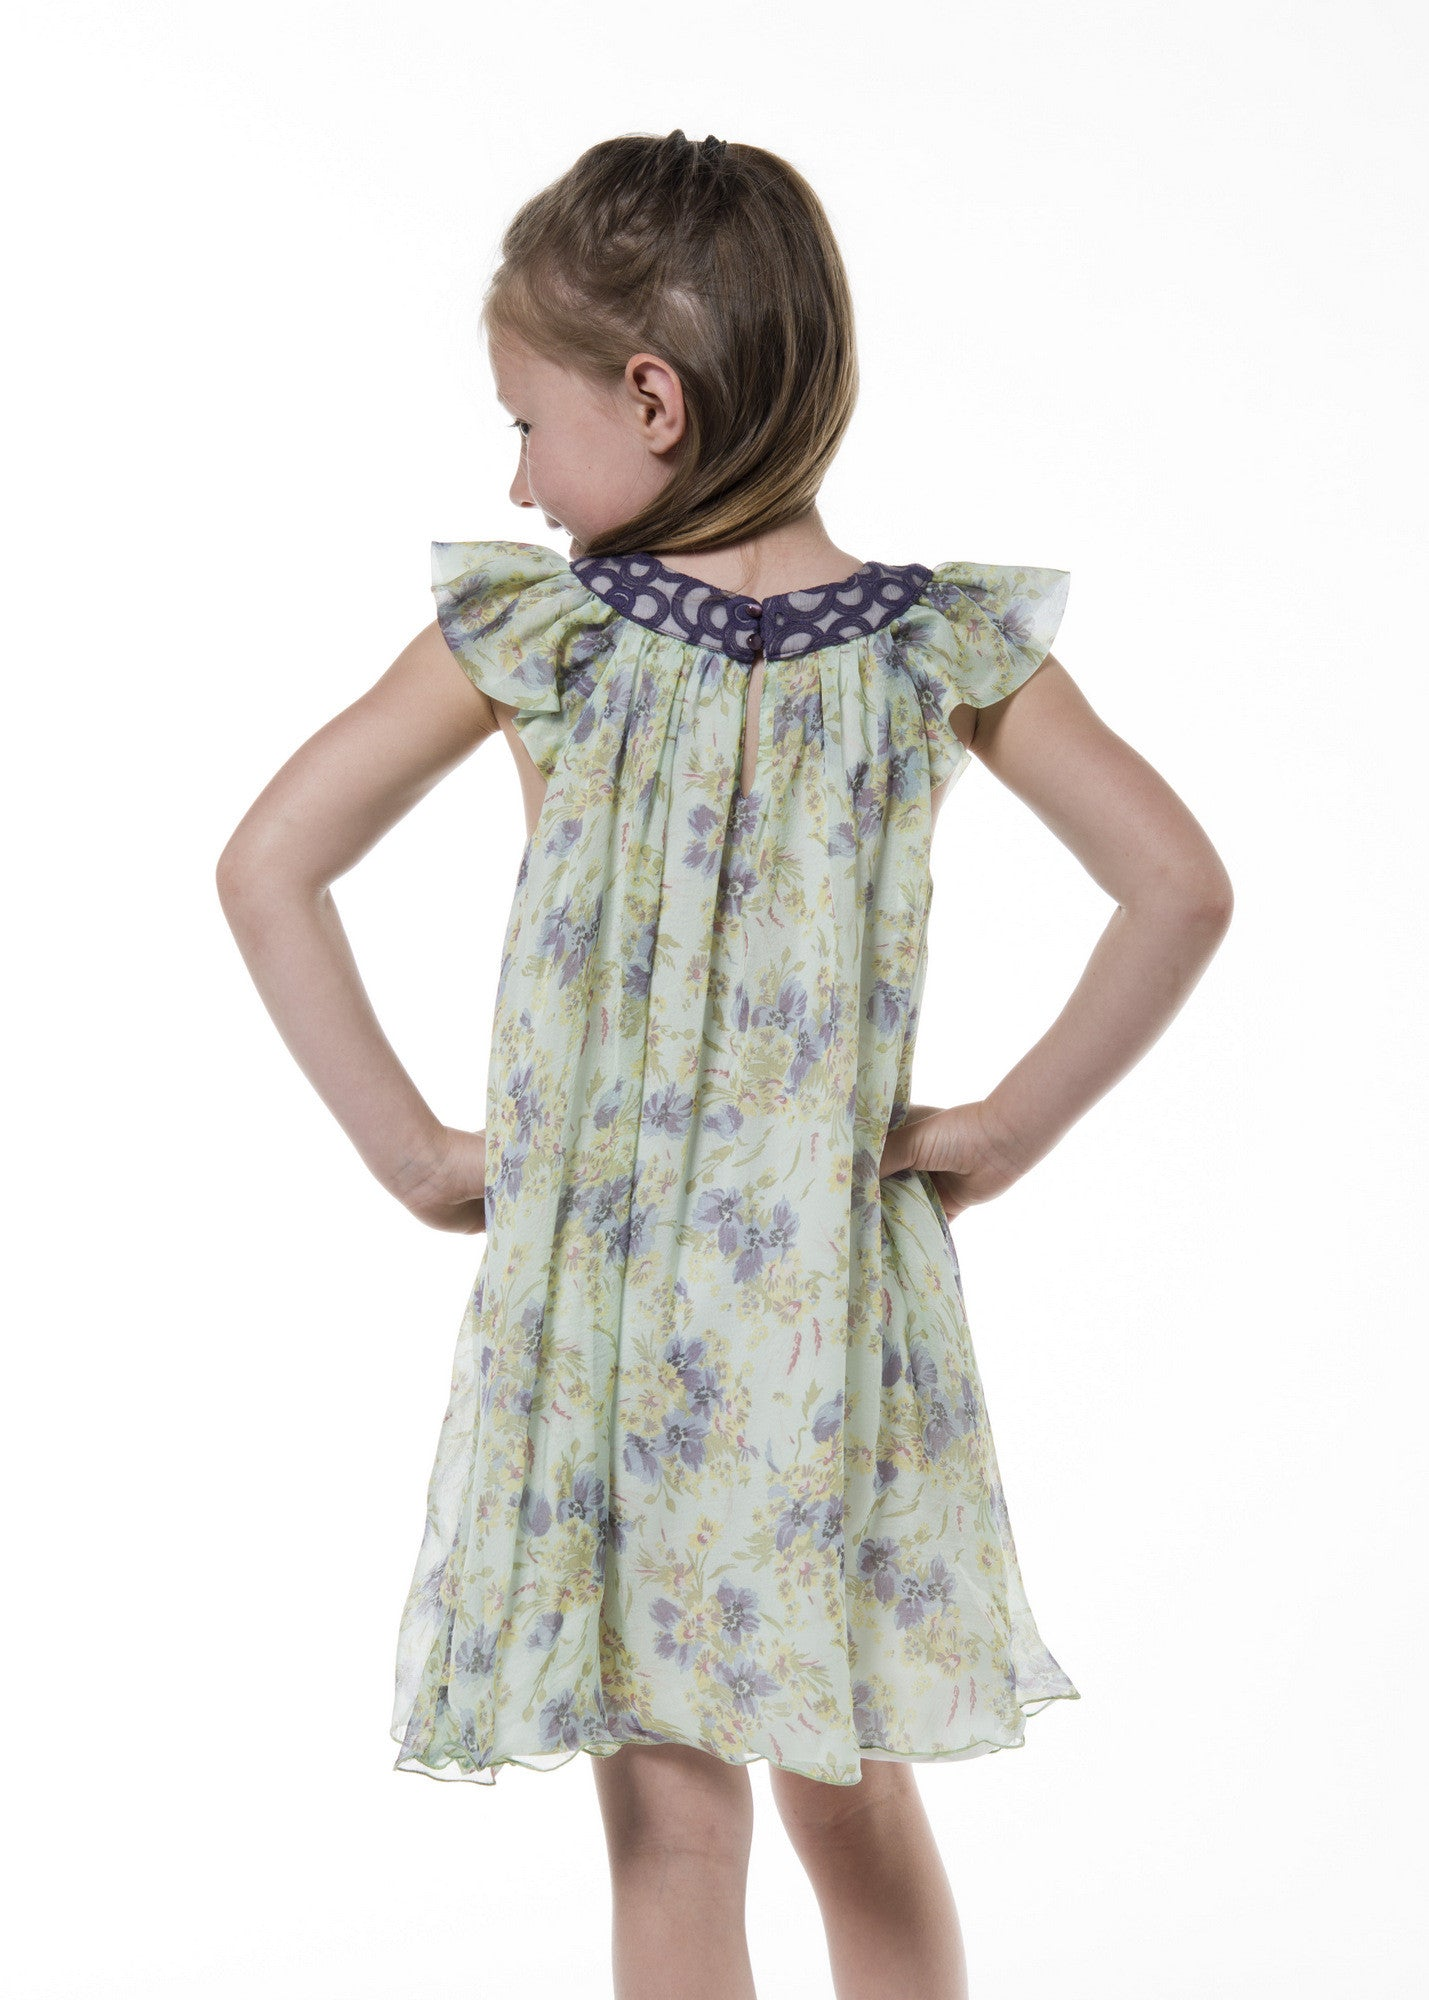 Chiffon silk dress, floral print